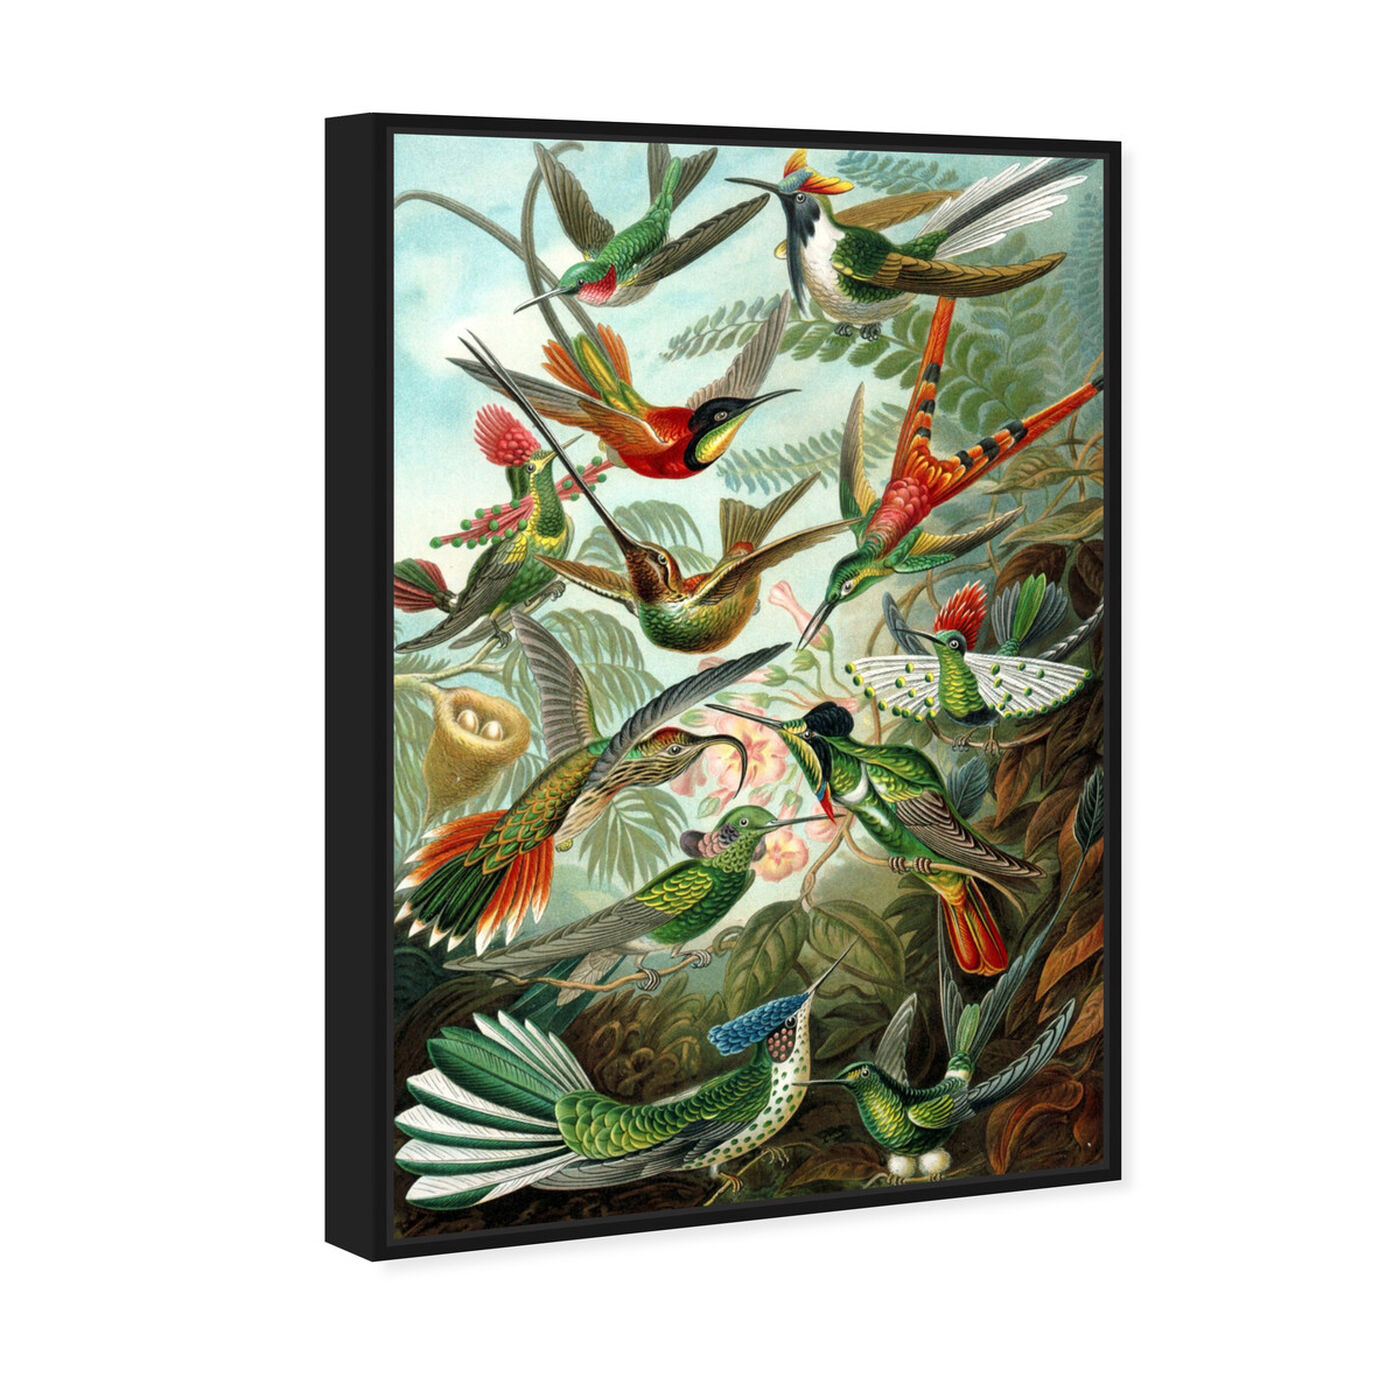 Angled view of Haeckel - Bird Study featuring animals and birds art.